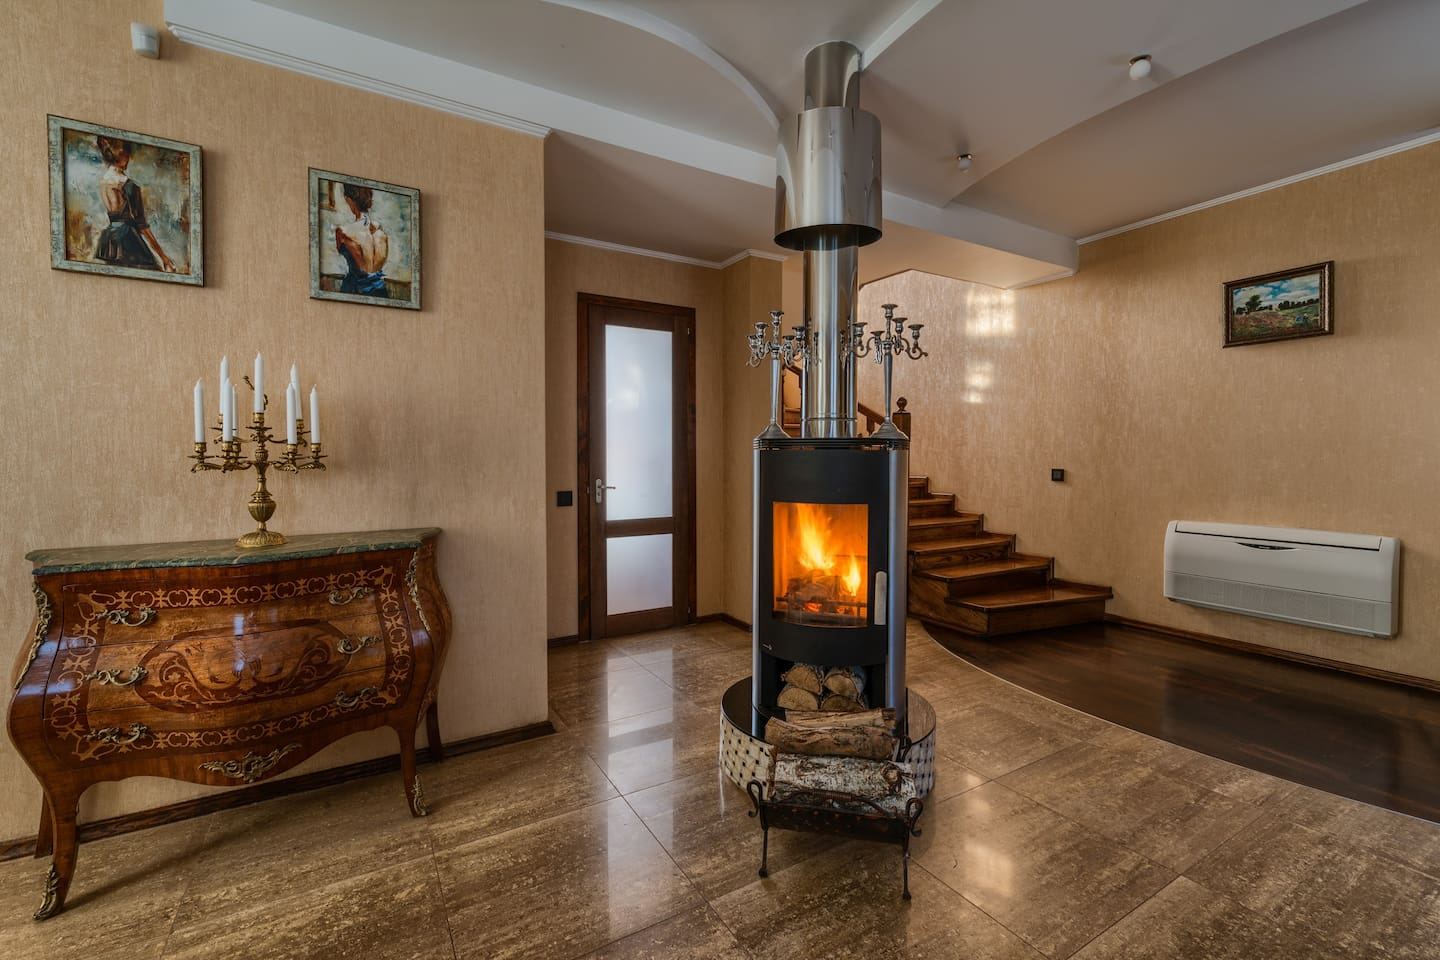 Welcome to the Living room with fireplace